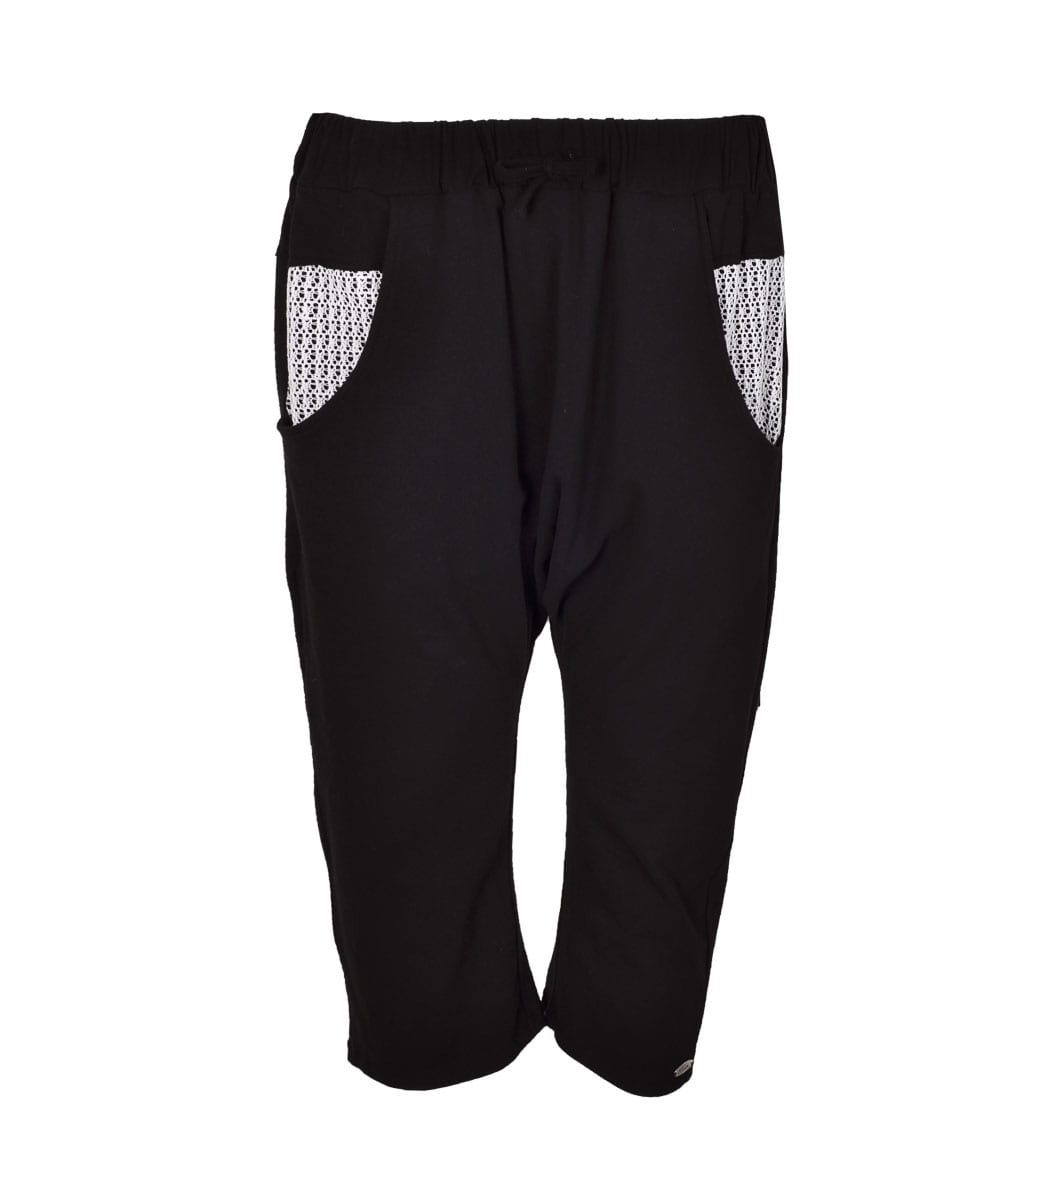 Cocoon contrast pants